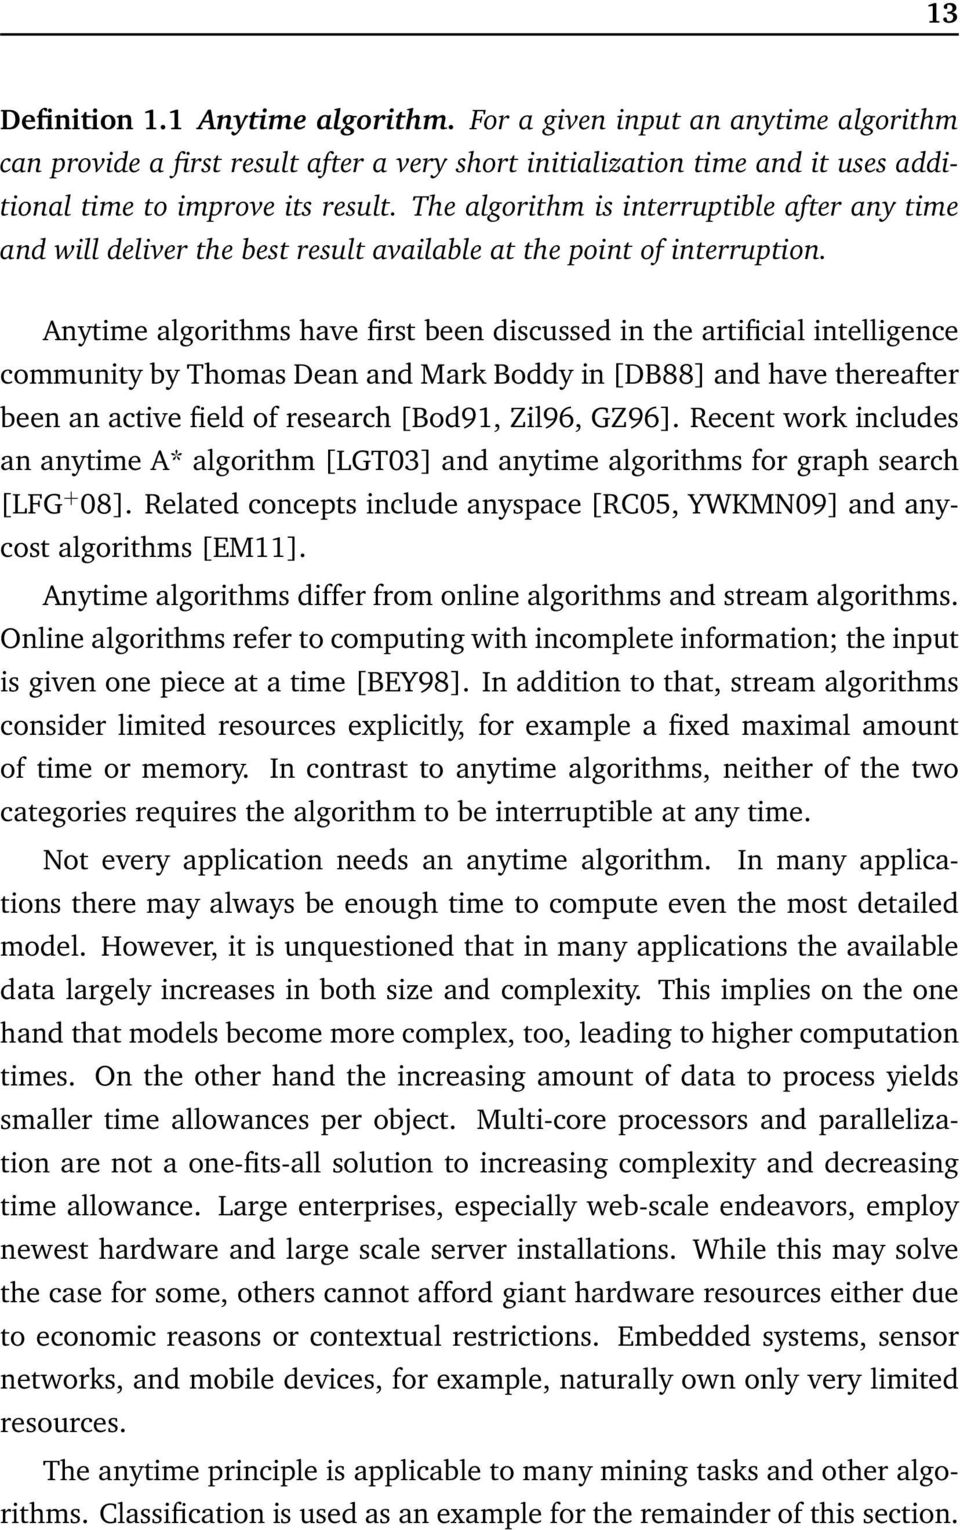 Anytime algorithms have first been discussed in the artificial intelligence community by Thomas Dean and Mark Boddy in [DB88] and have thereafter been an active field of research [Bod91, Zil96, GZ96].